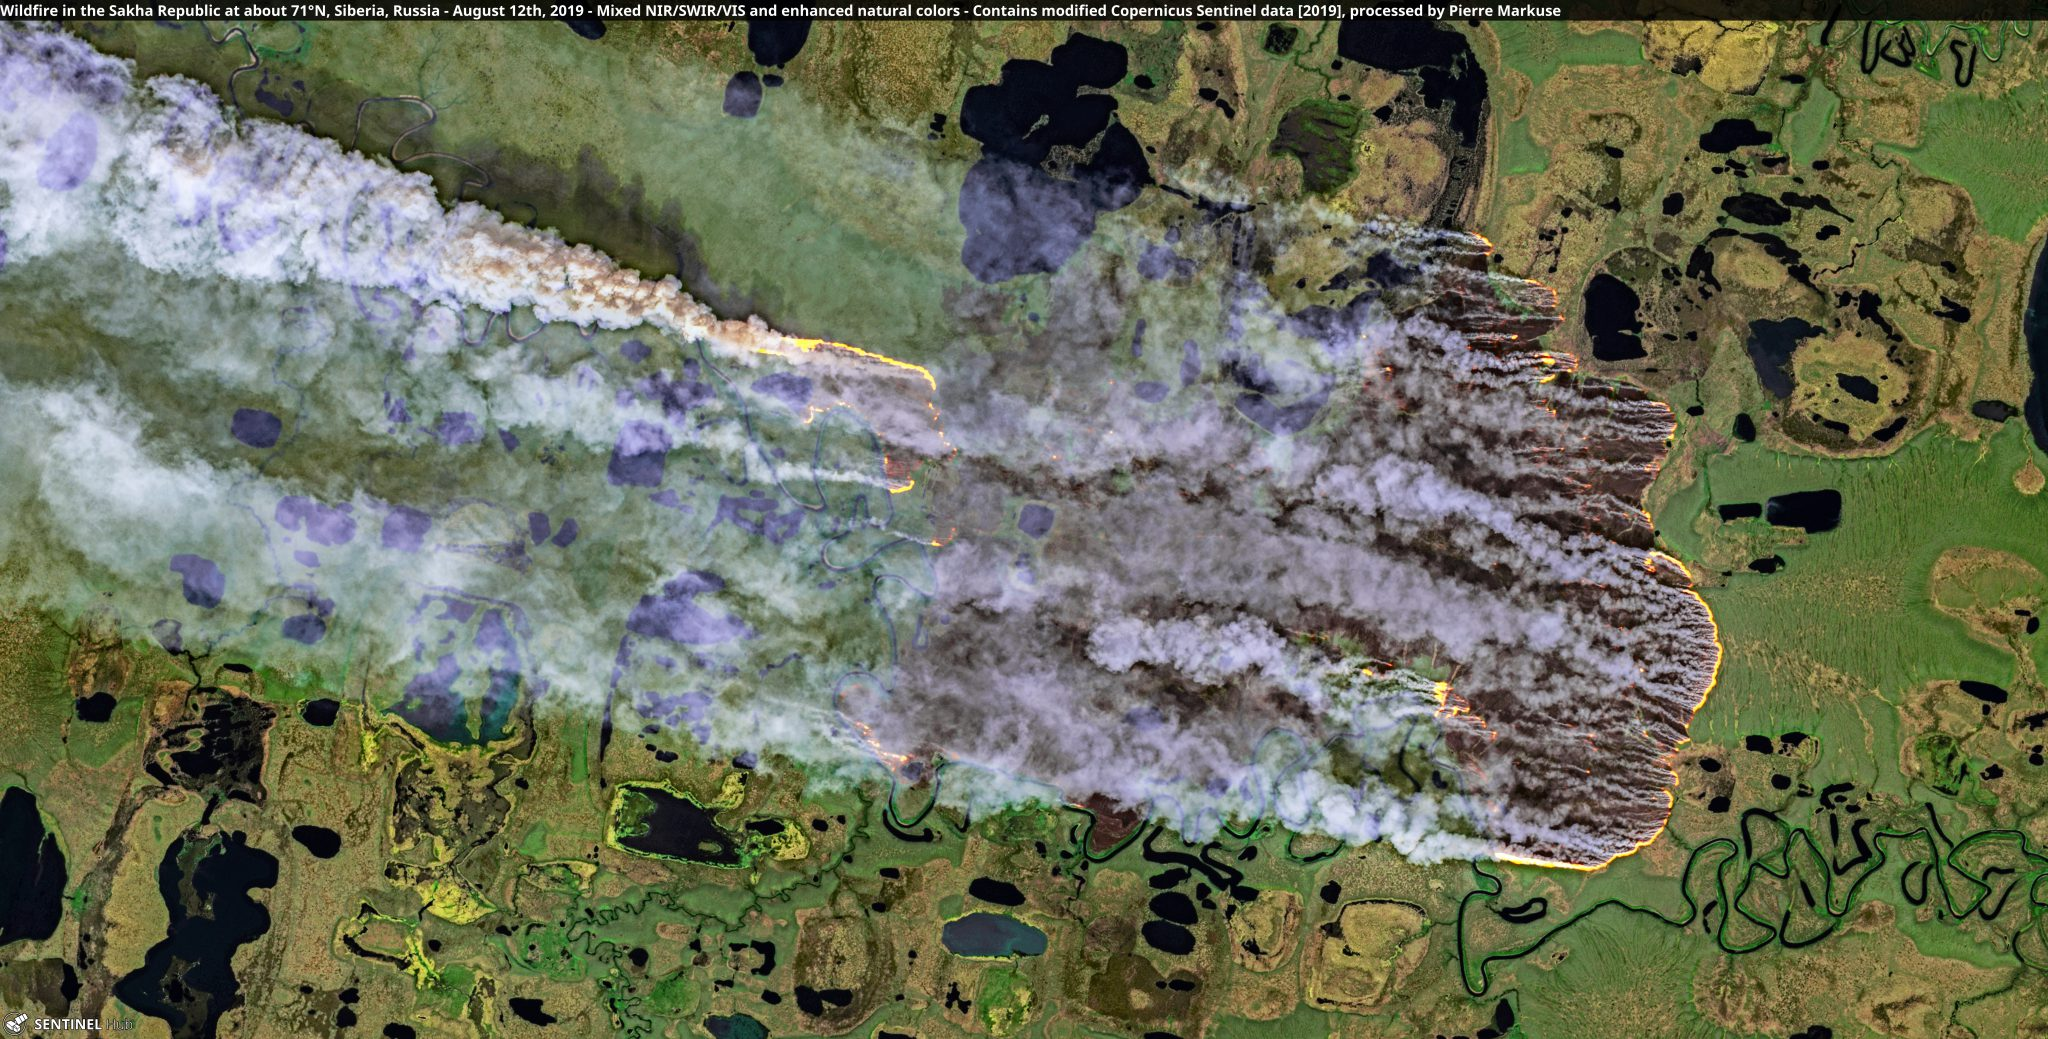 desc:Wildfire in the Sakha Republic at about 71°N, Siberia, Russia - August 12th Copernicus/Pierre Markuse